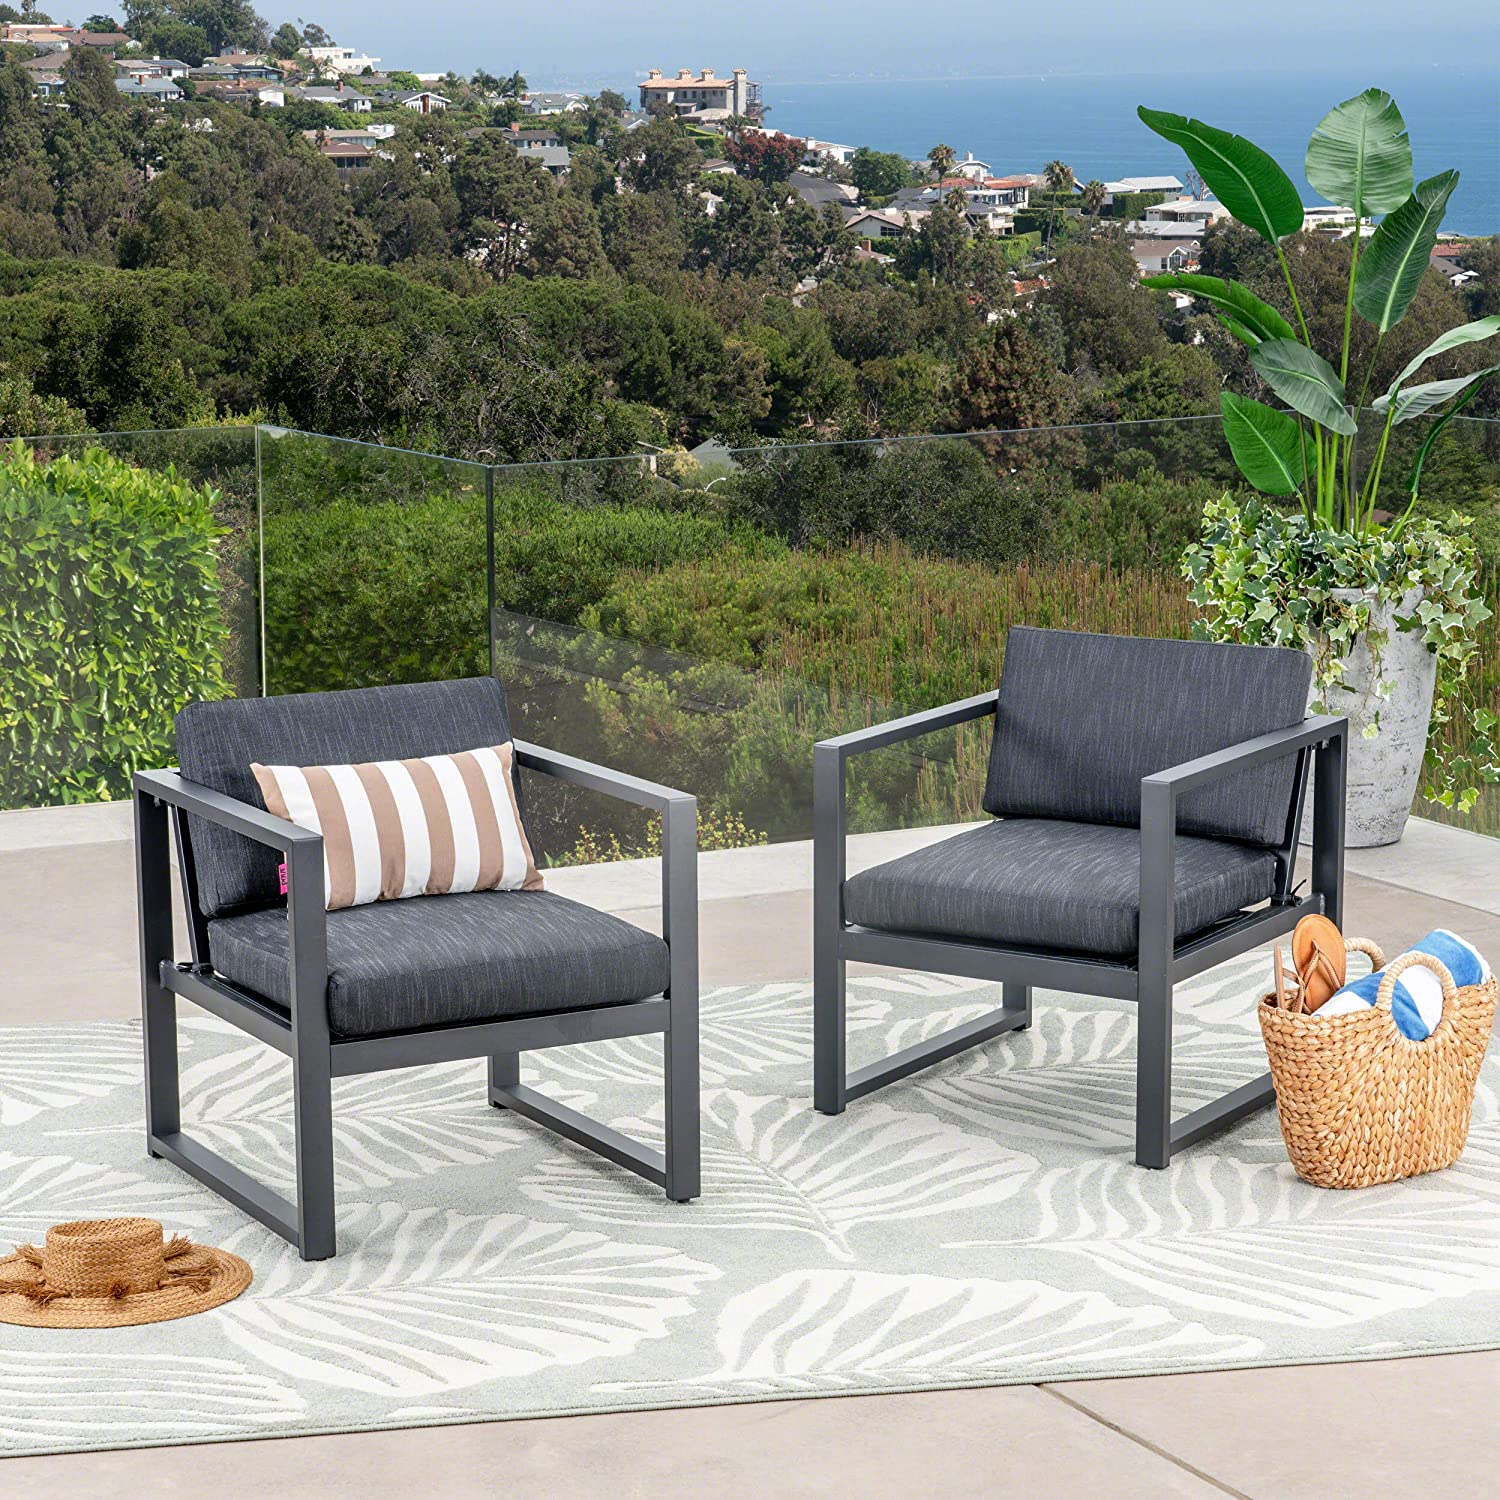 Christopher Knight Home 305394 Wally Outdoor Aluminum Club Chairs Set of 2 , Dark Gray and Black